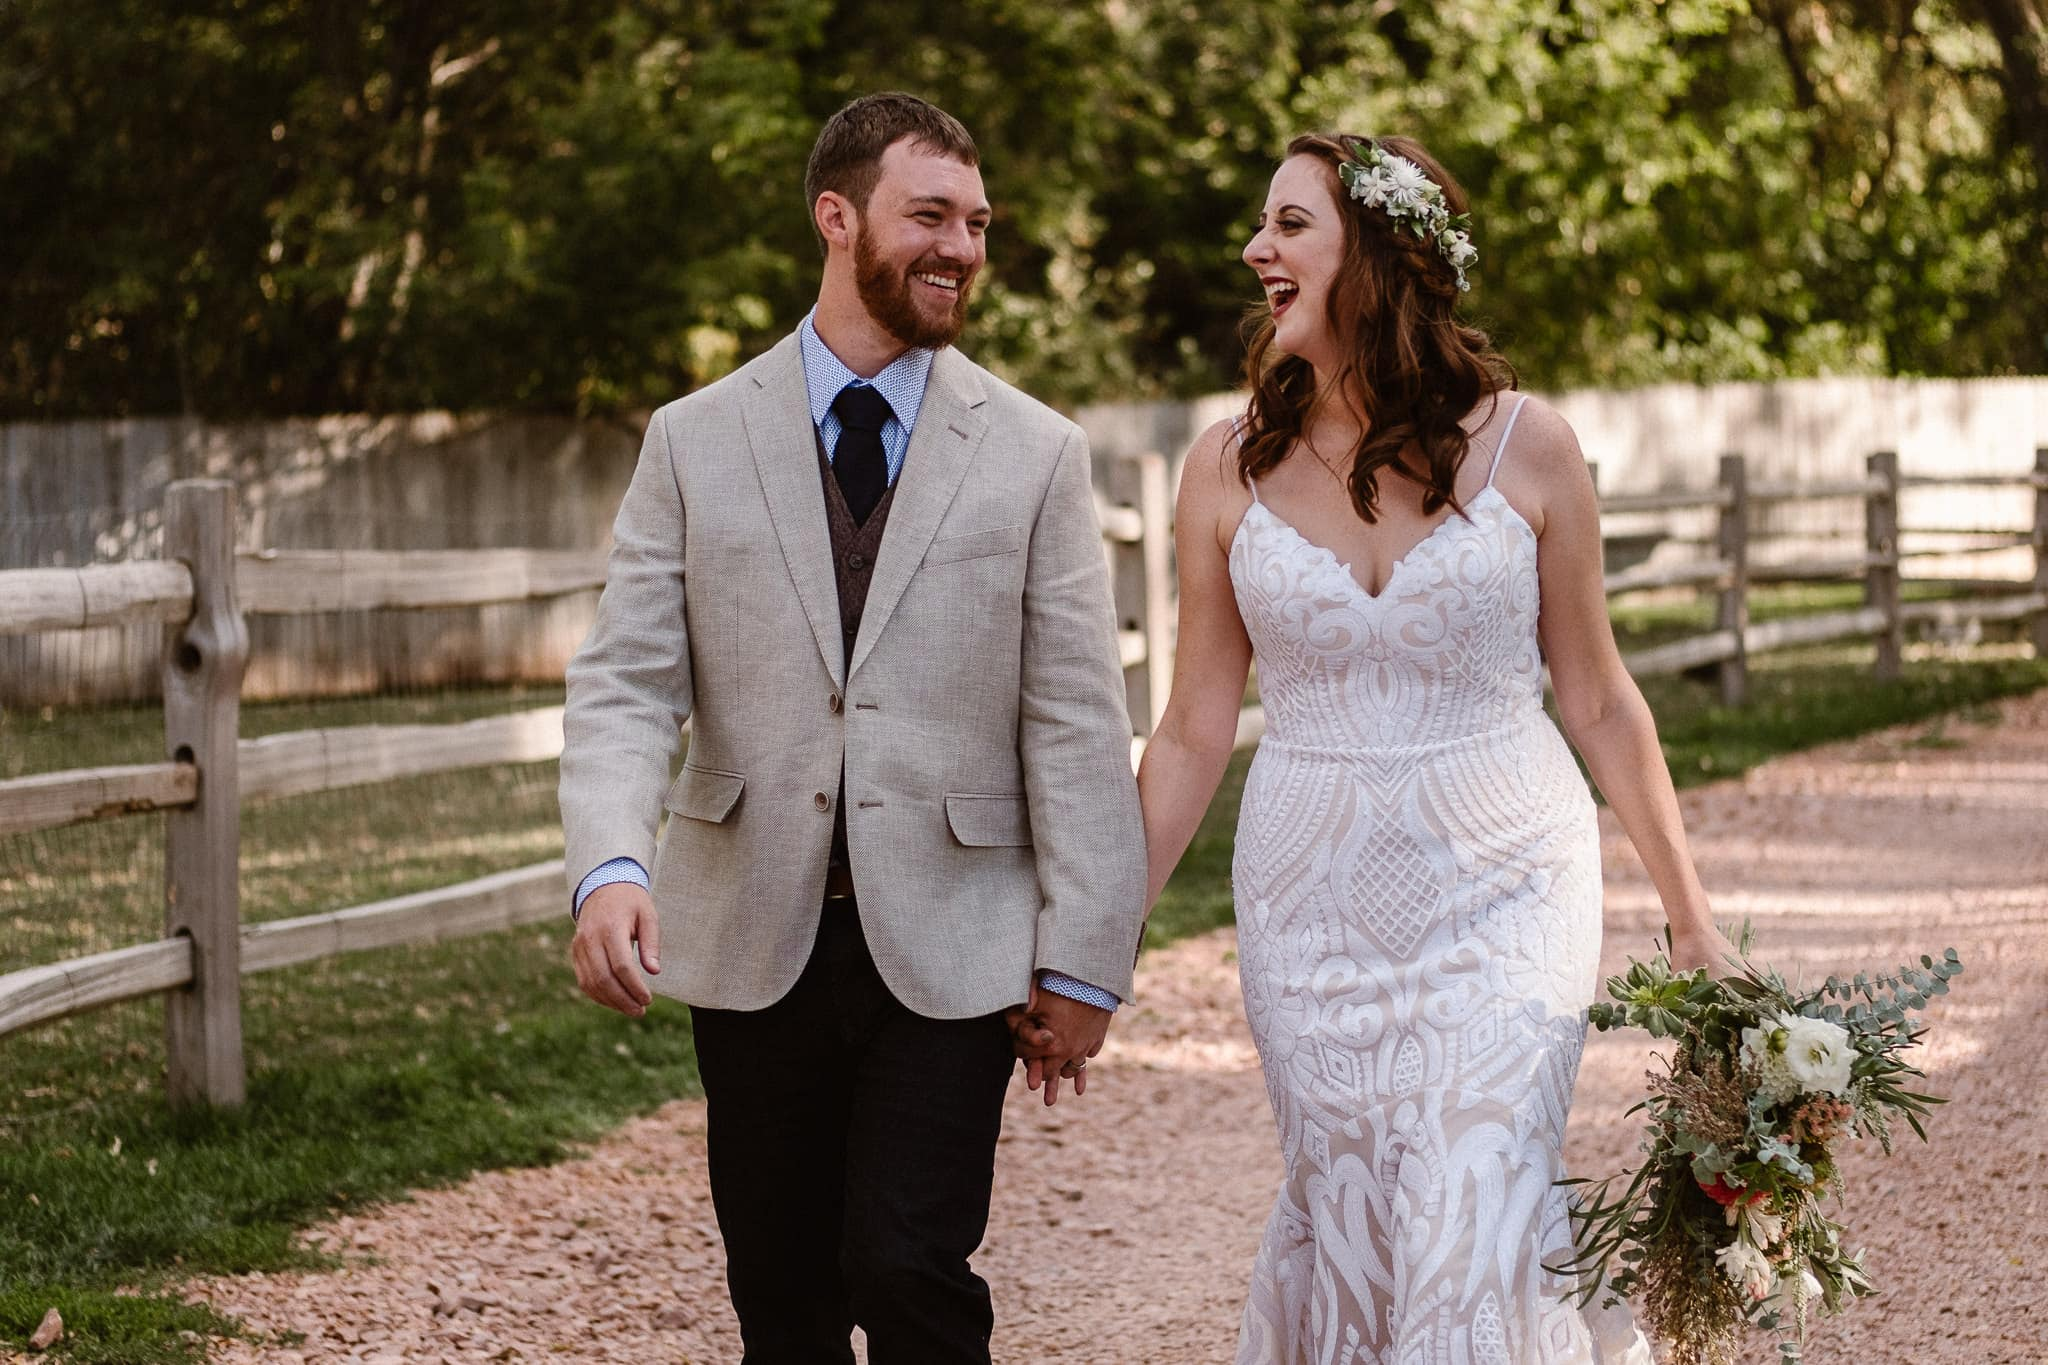 Lyons Farmette wedding photographer, Colorado intimate wedding photographer, bride and groom walking and laughing